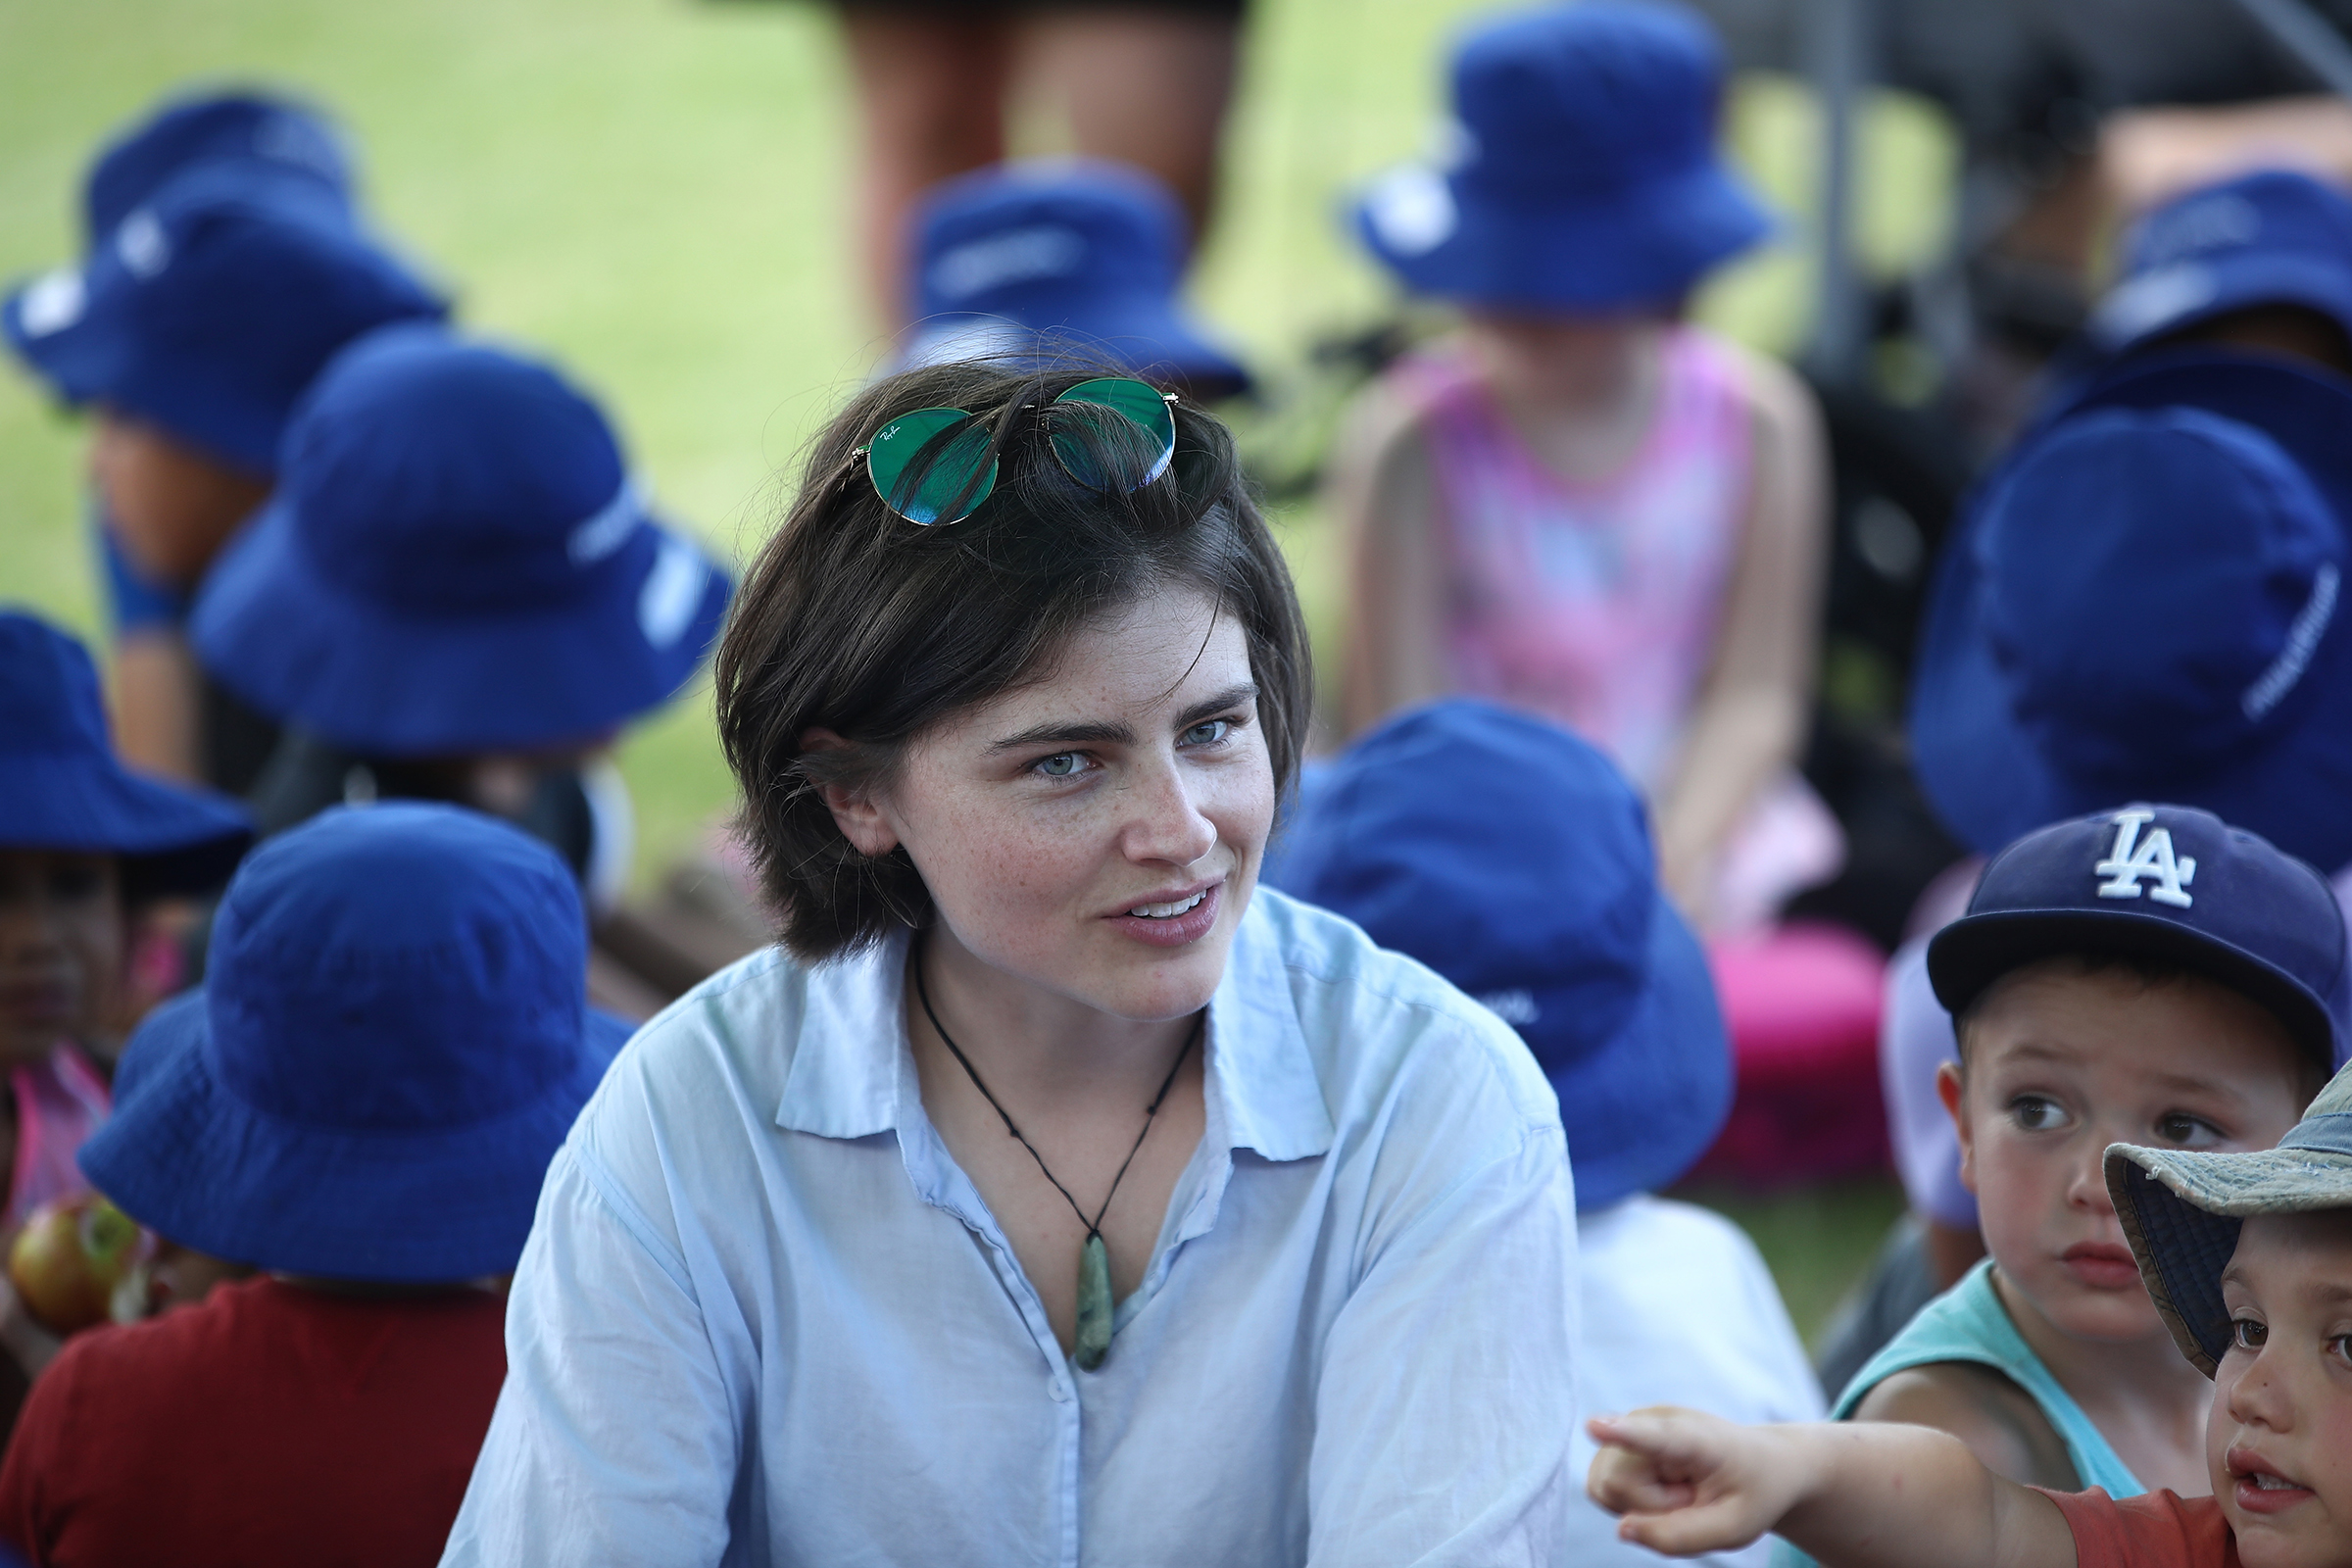 Green Party MP Chloe Swarbrick shares a picnic with children from Paihia Primary School in Waitangi, New Zealand on Feb. 5, 2018.